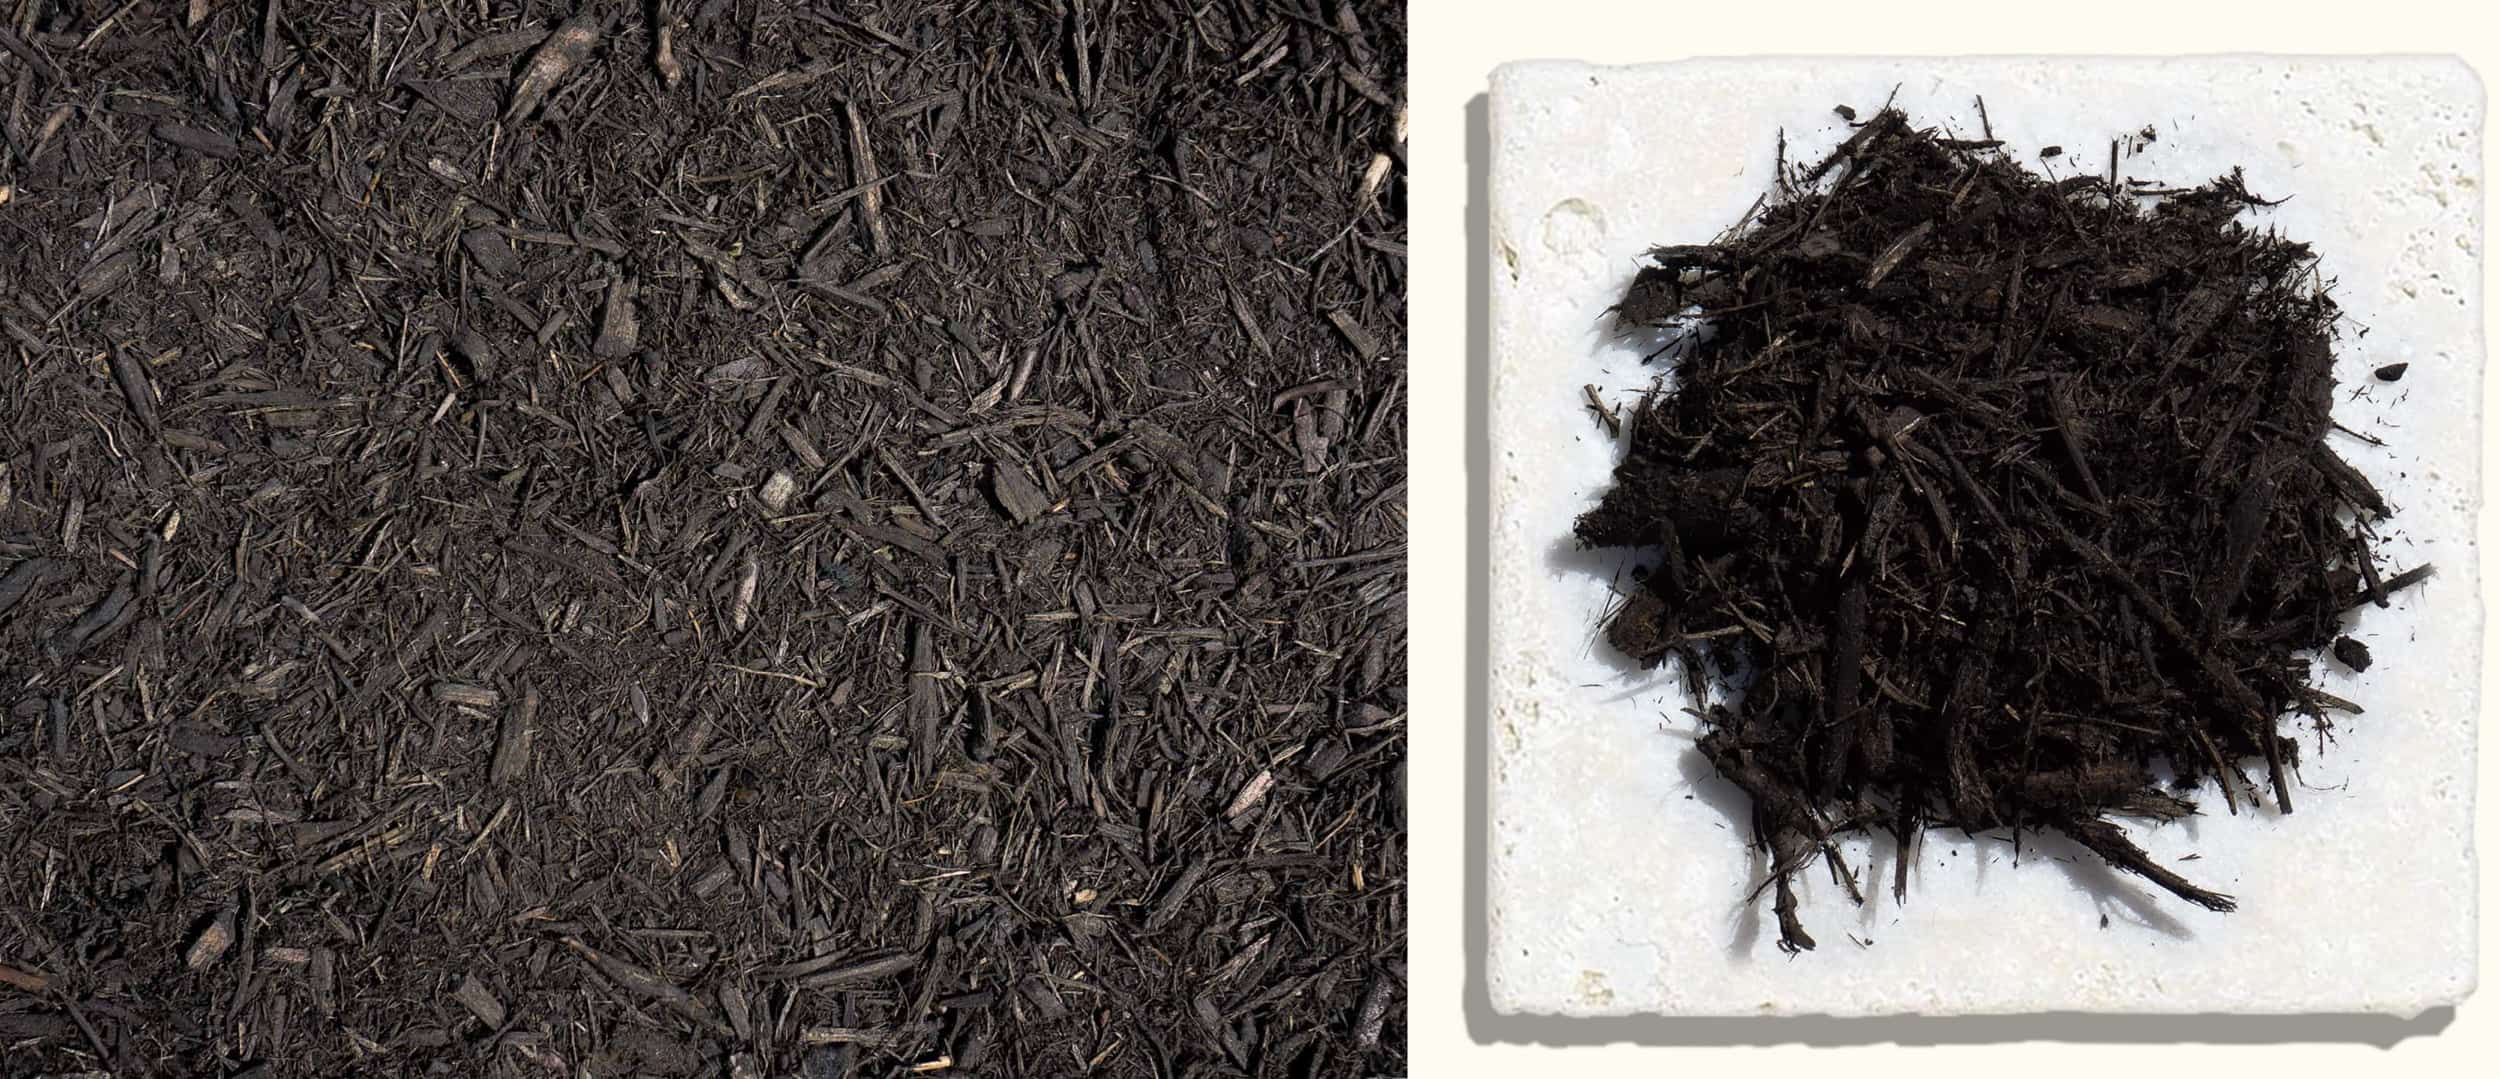 Black Dyed Mulch $35.99 $37.99 $37.99 - Our black, season lasting colored mulch is the closest to the look of black soil to really make your plant colors pop.